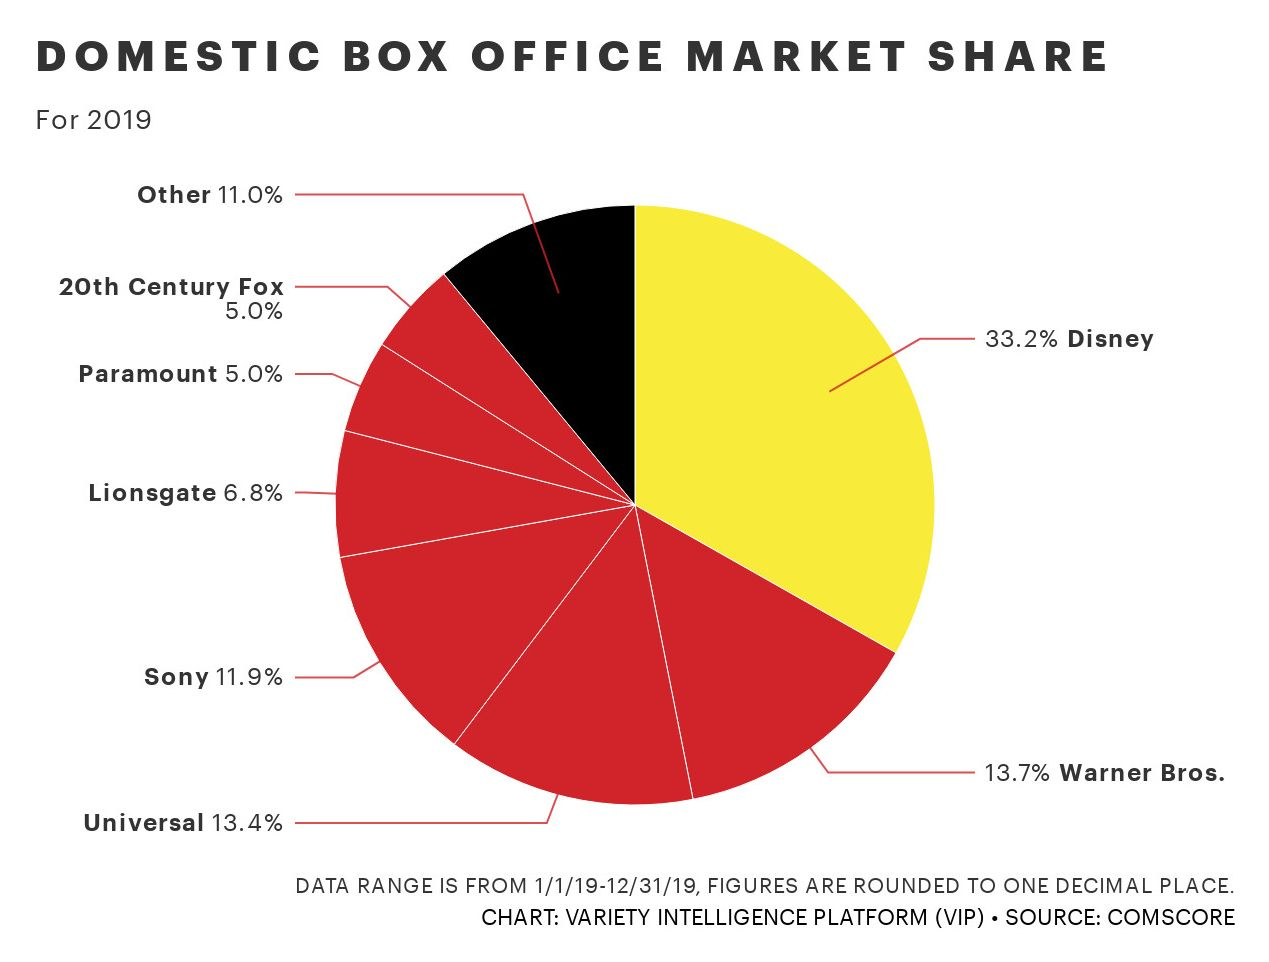 Domestic Box Office Share - Variety